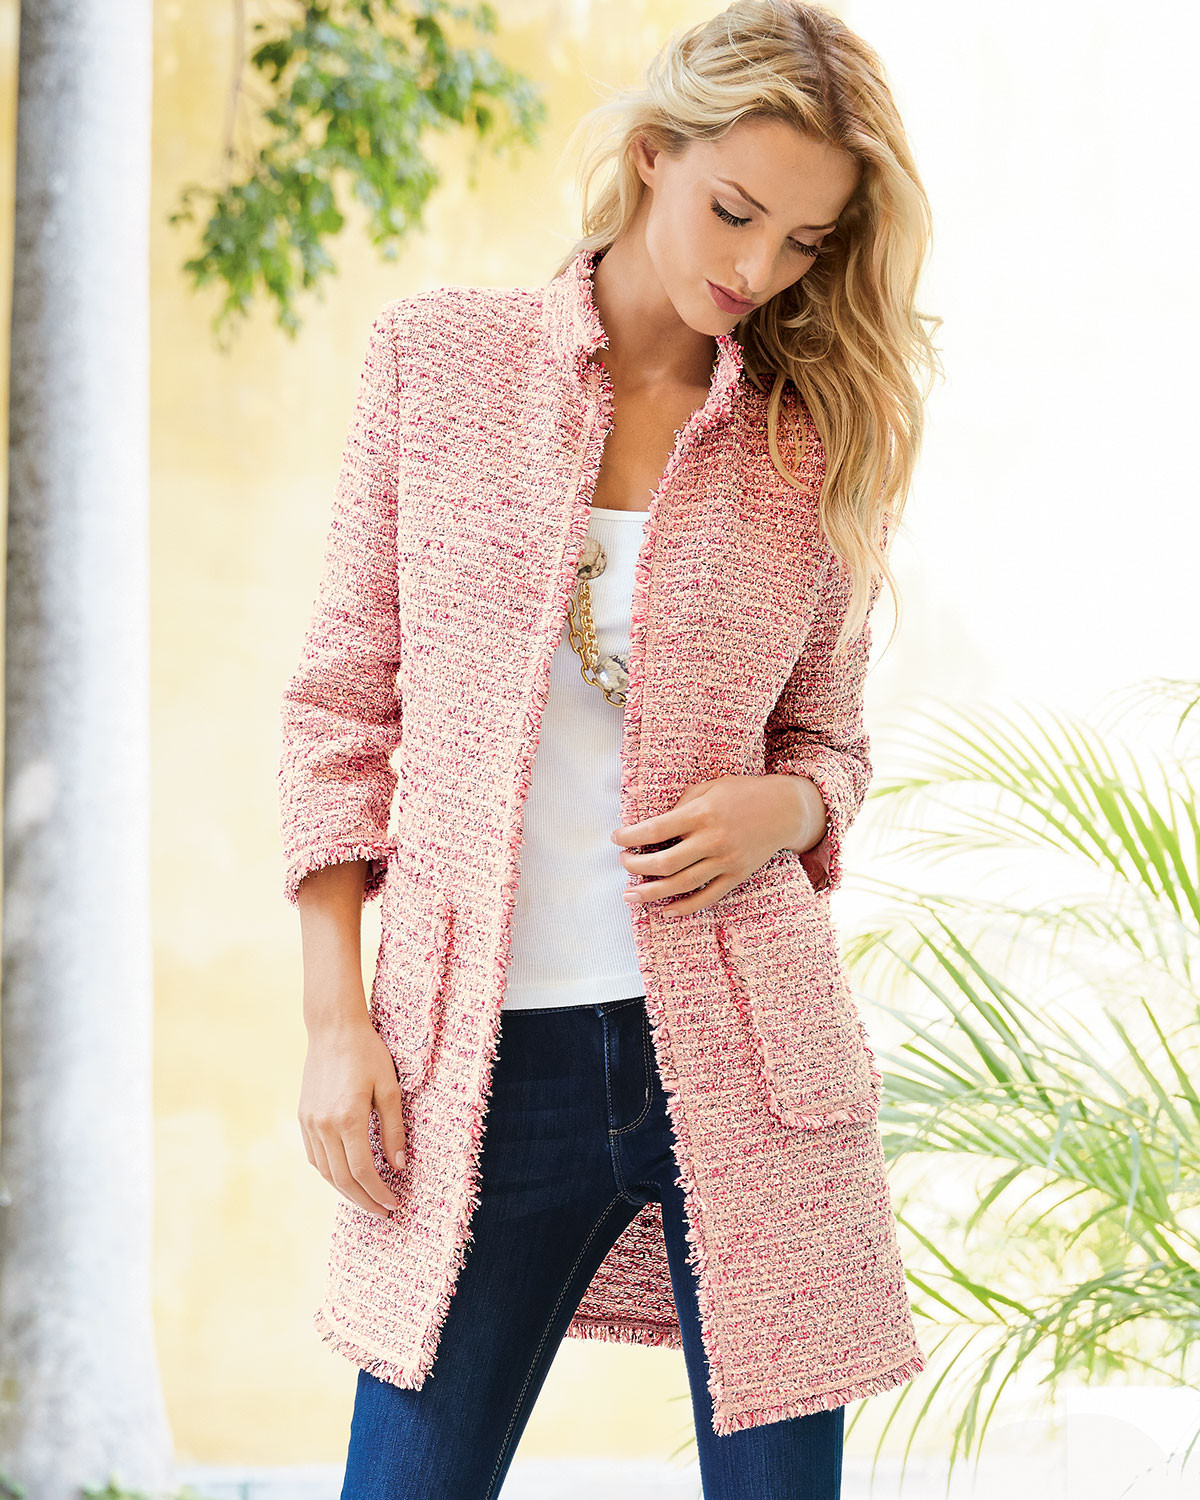 Neiman Marcus Pink Home Decor Ebth: Pink Boucle Jacket